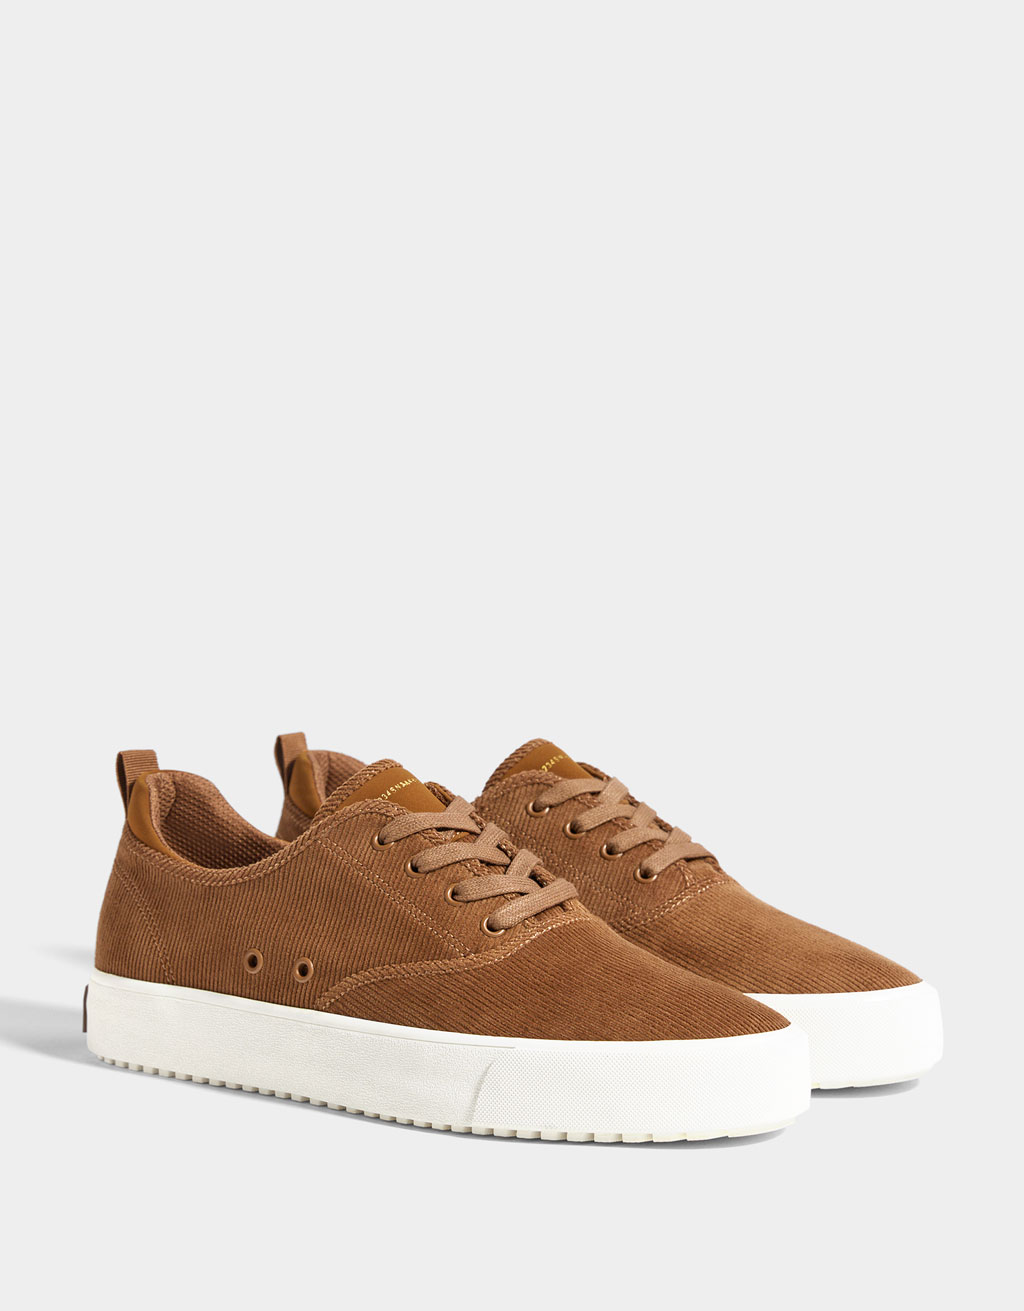 Men's corduroy trainers